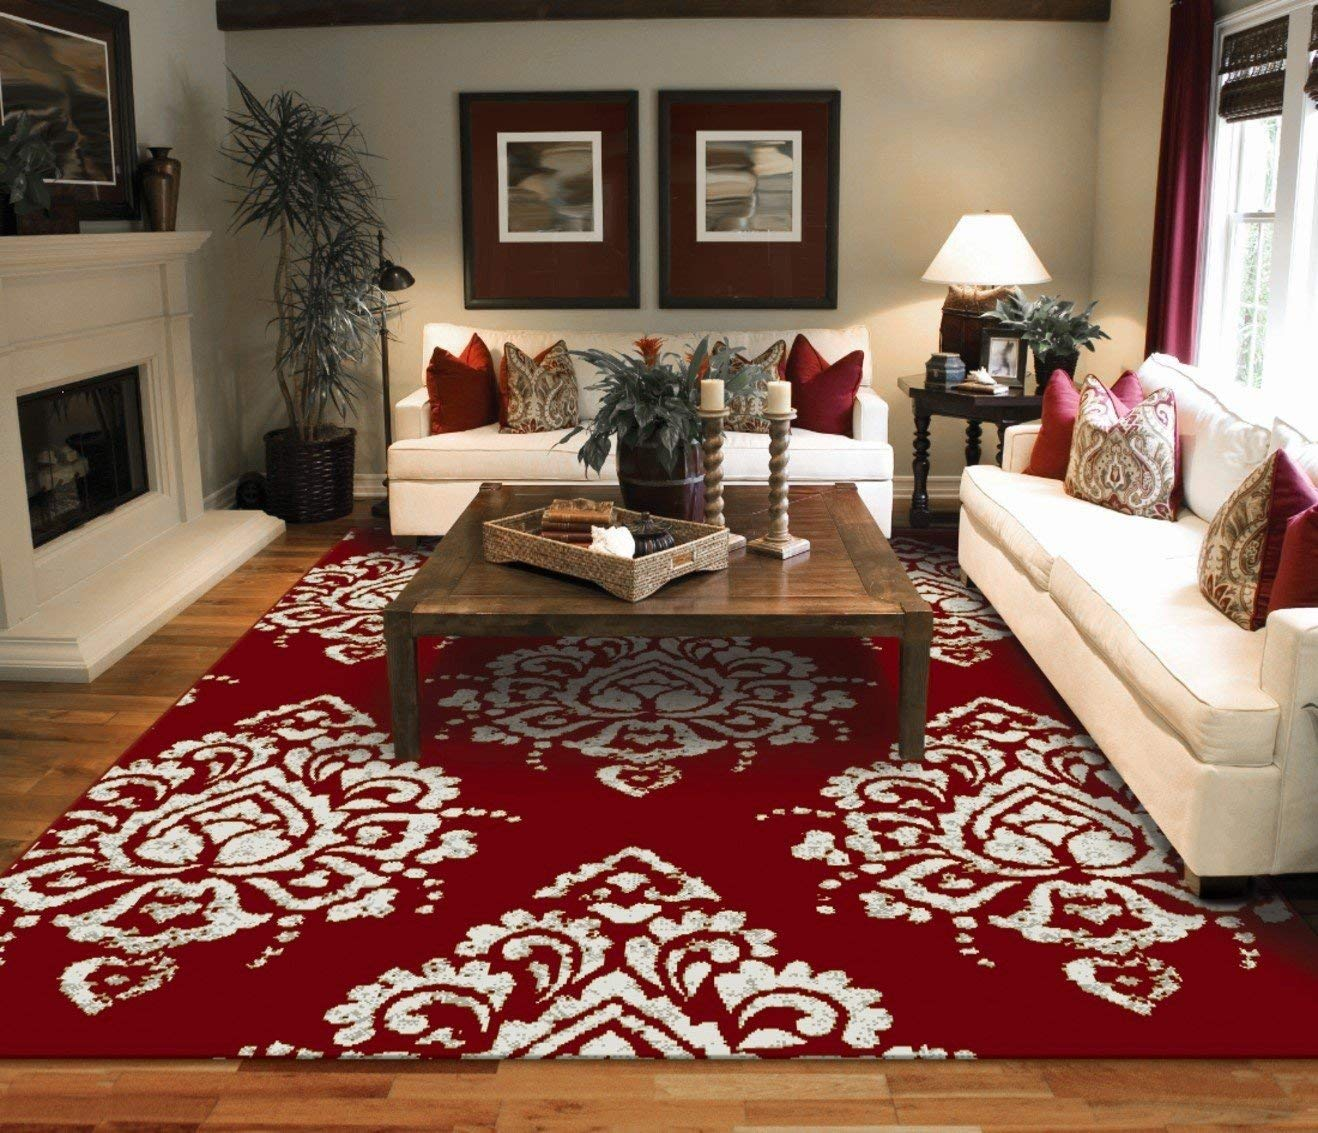 Red rugs amazon.com: new modern rugs for living room red u0026 cream flower rugs leaves LBWVRWC